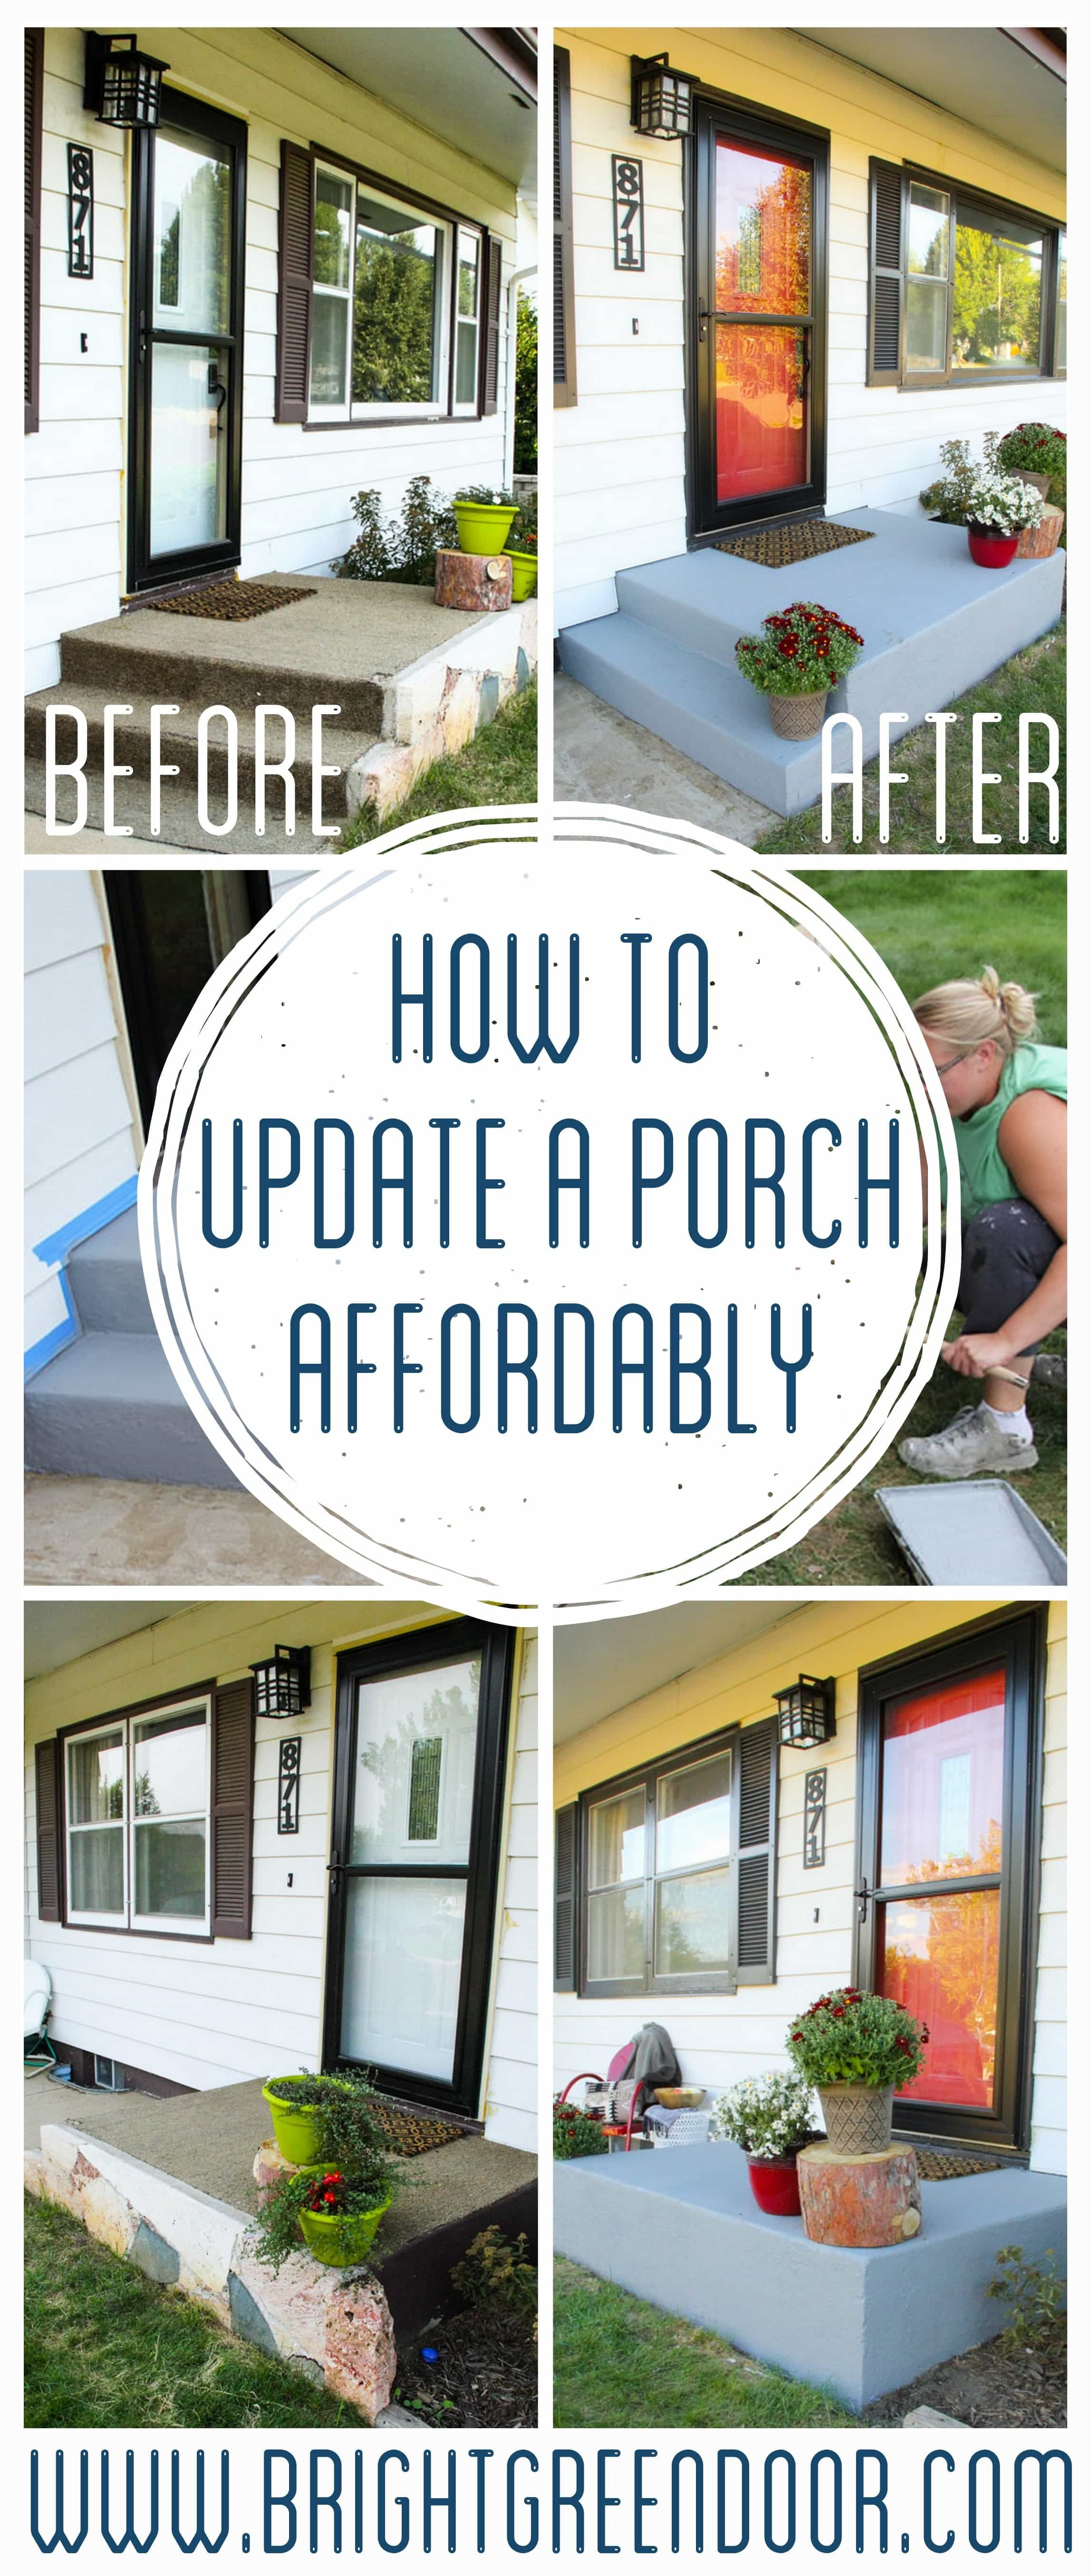 An Affordable Porch Makeover #porchpaintideas